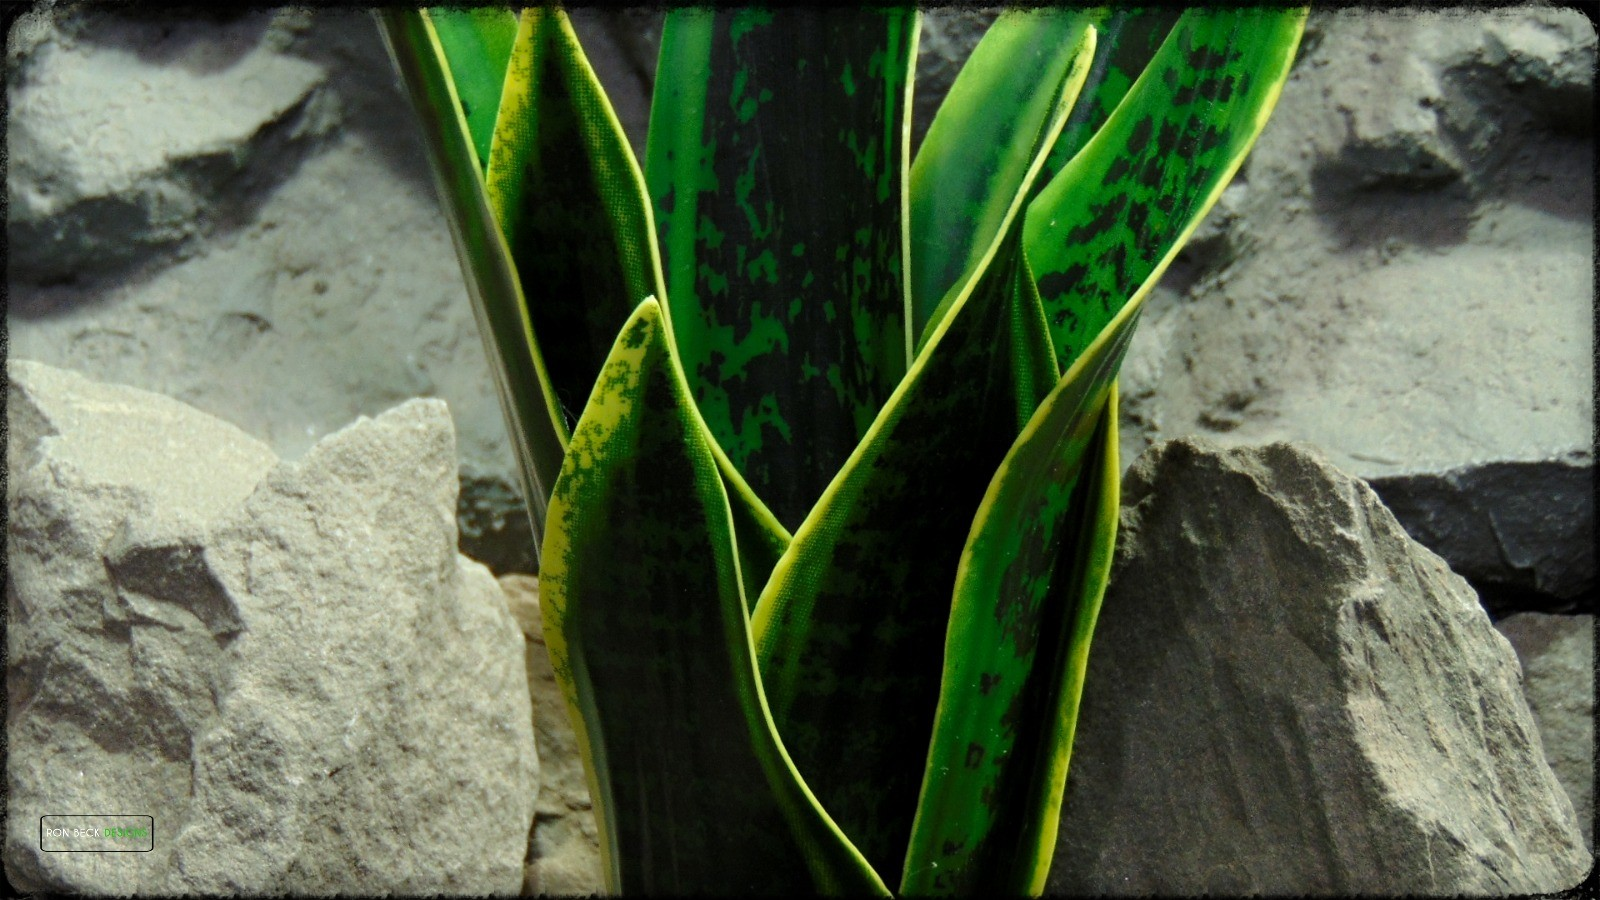 Artificial Sansevieria Mother in Law Tongue - Reptile Habitat Plant prp393 2